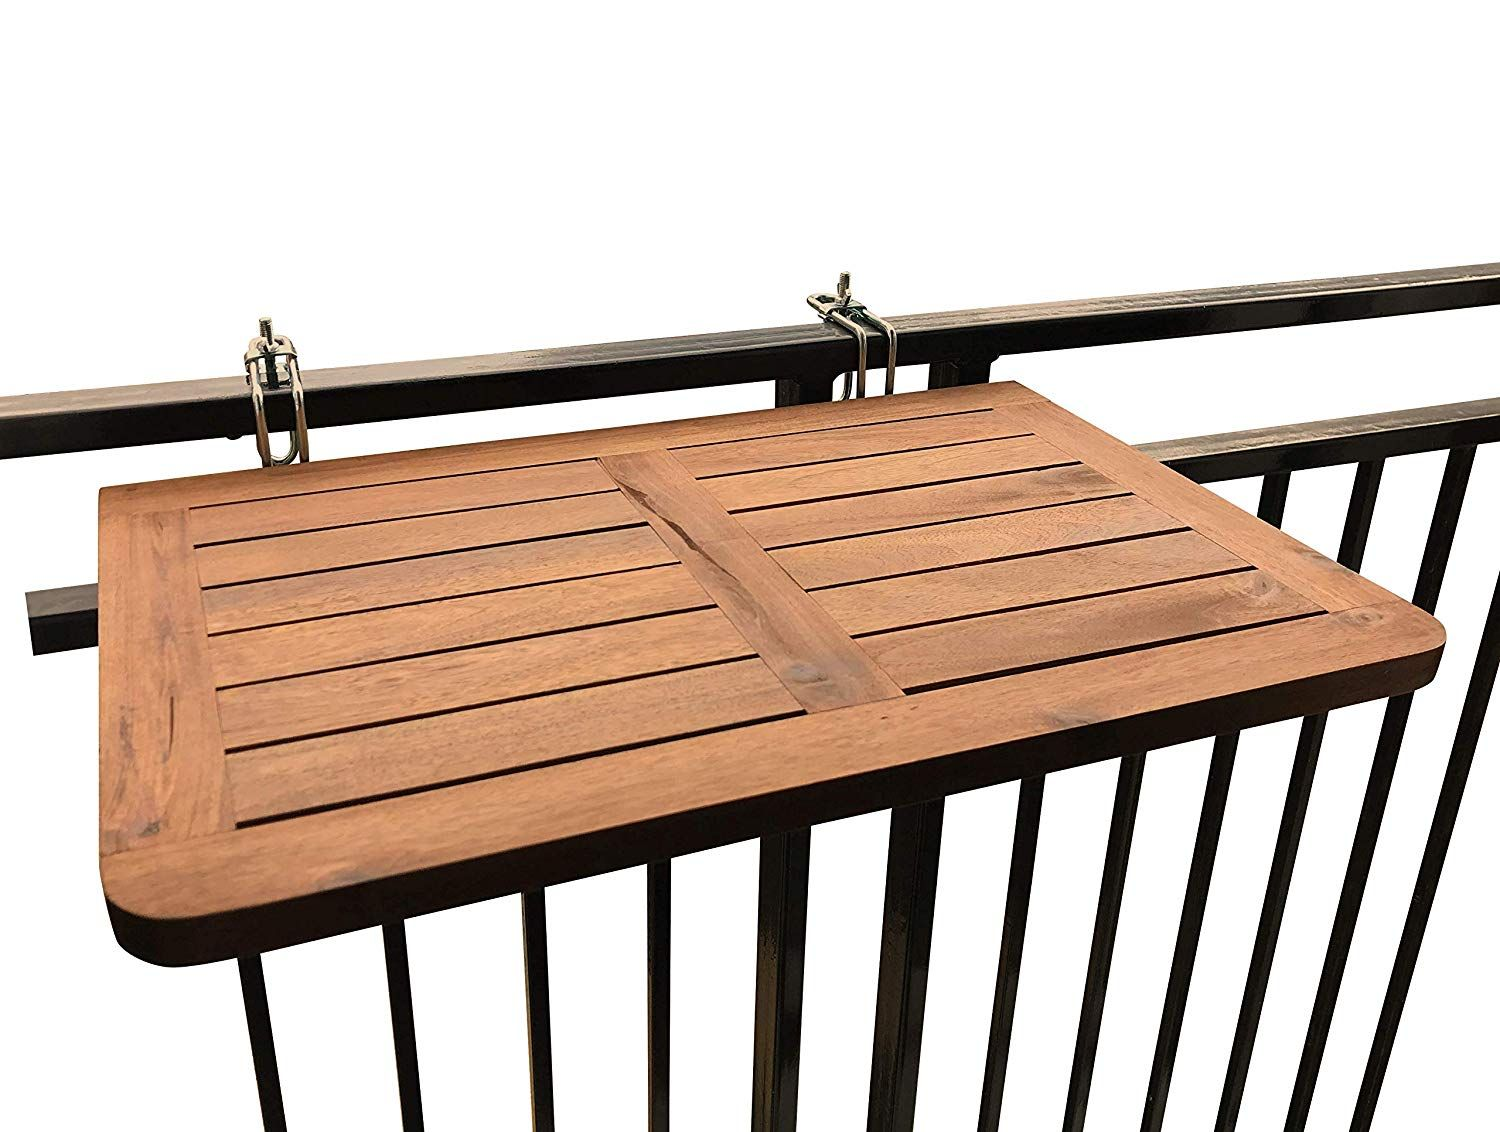 Balcony Table Hardwood Table Folding Table Hanging Railing Table Dining Garden Bbq Side Table Front Porch Christmas Decor Balcony Decor Hardwood Table